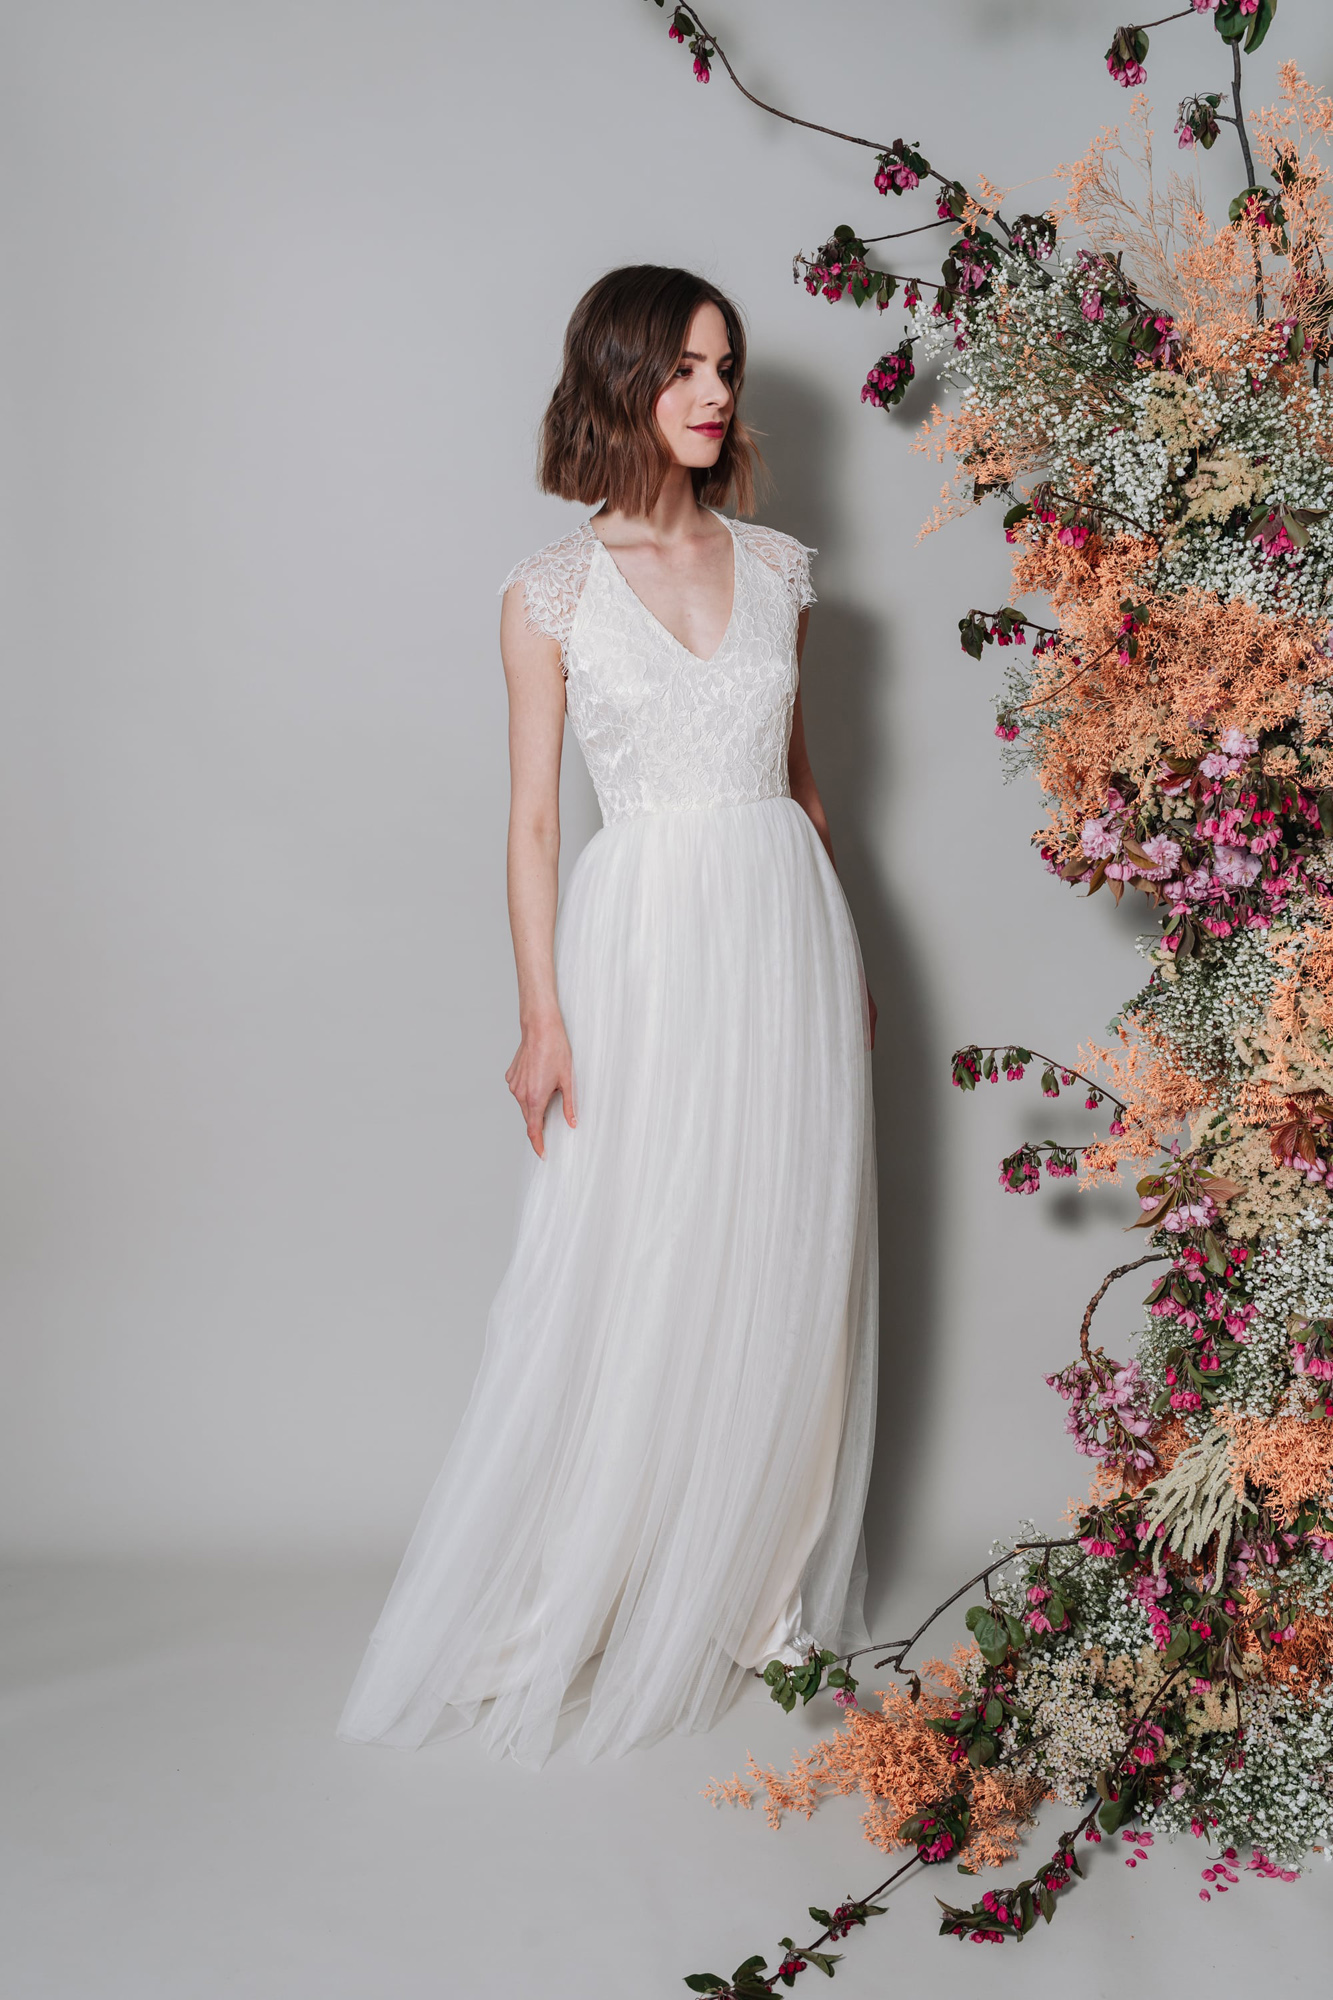 Kate-Beaumont-Sheffield-Mimosa-Lace-Tulle-Bohemian-Wedding-Gown-2.jpg